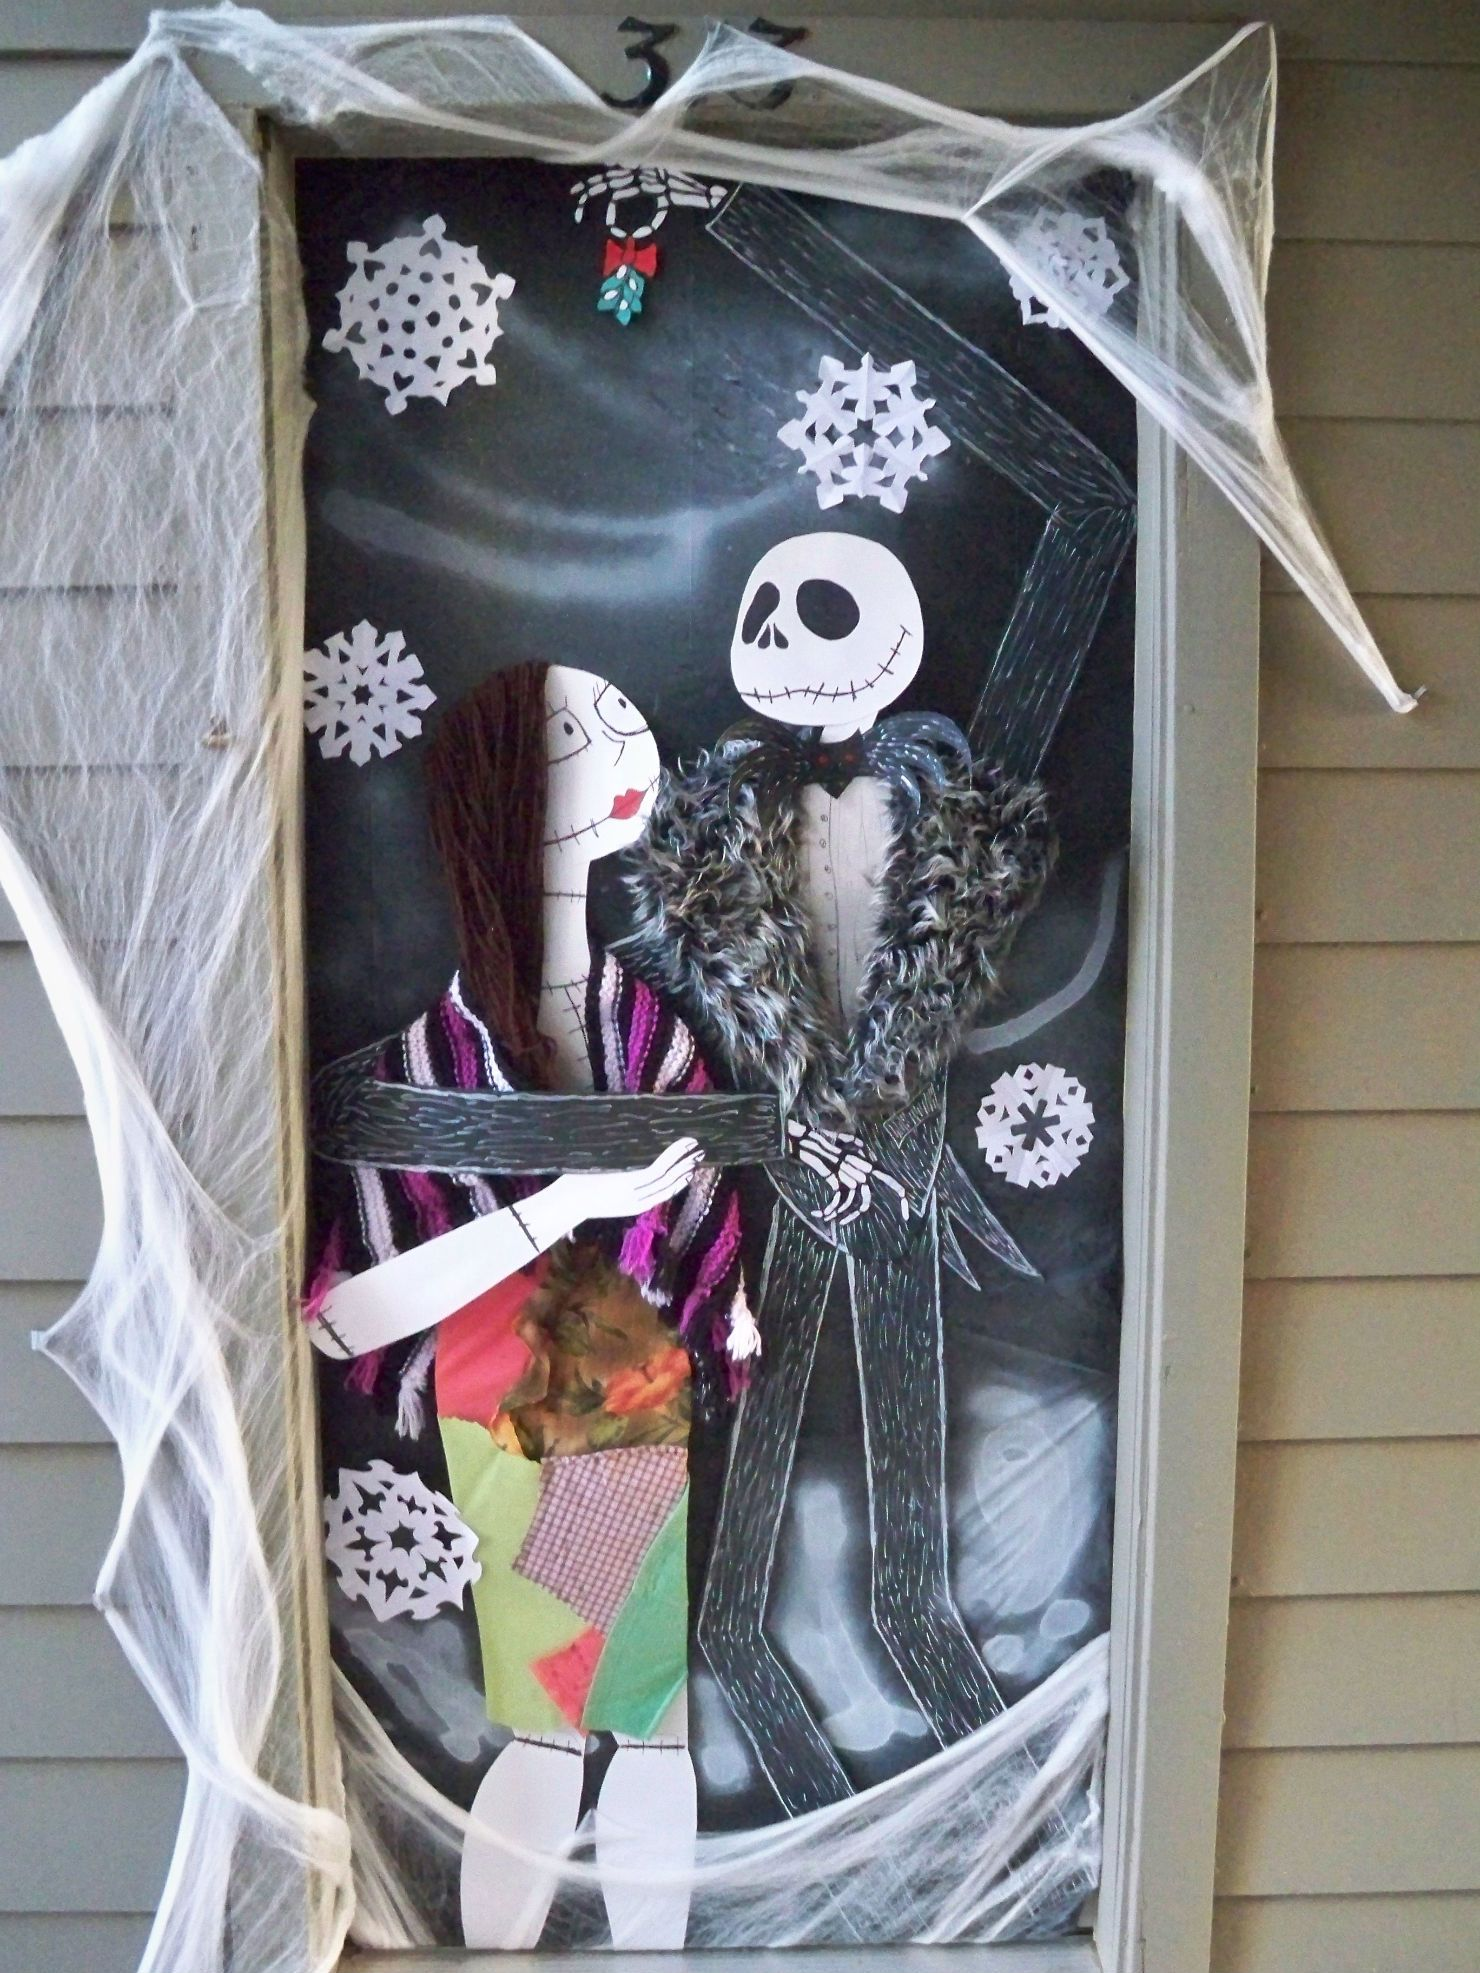 The Tim Burton Halloween Door Door Decorations Pinterest - Halloween Door Decorations